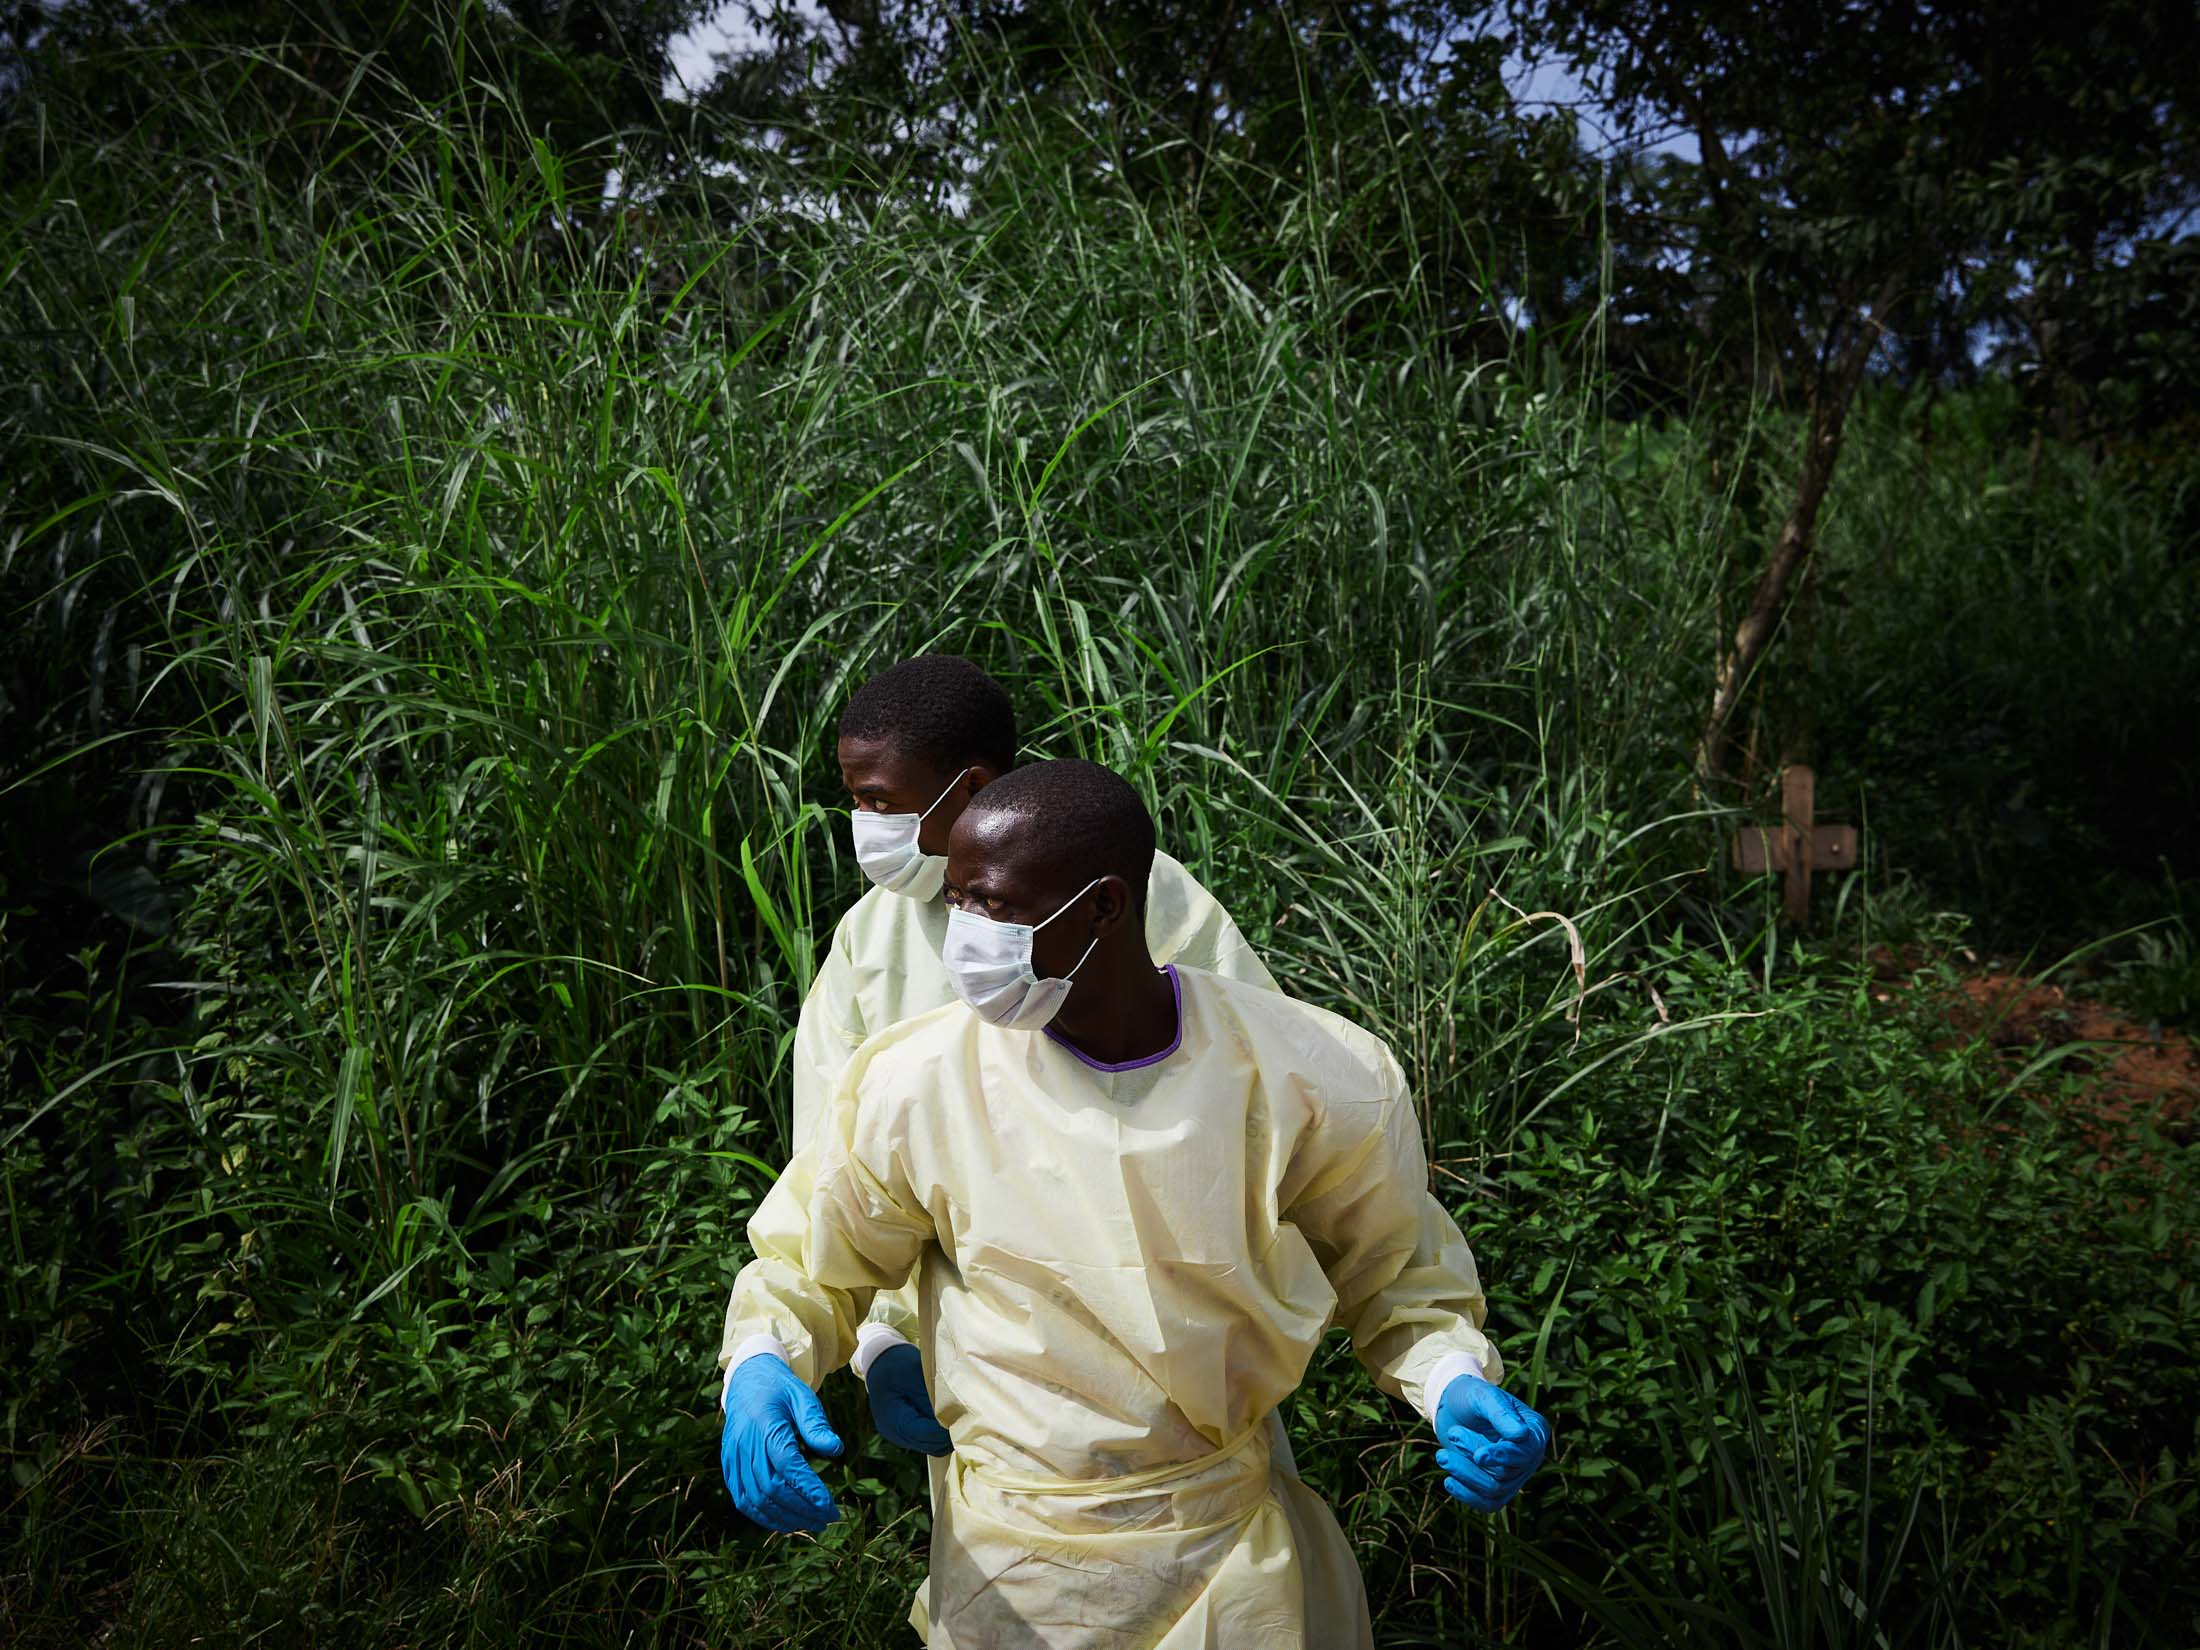 Health workers prepare to bury the body of an 11 month old child, Moises, a victim of Ebola, Beni Territory.